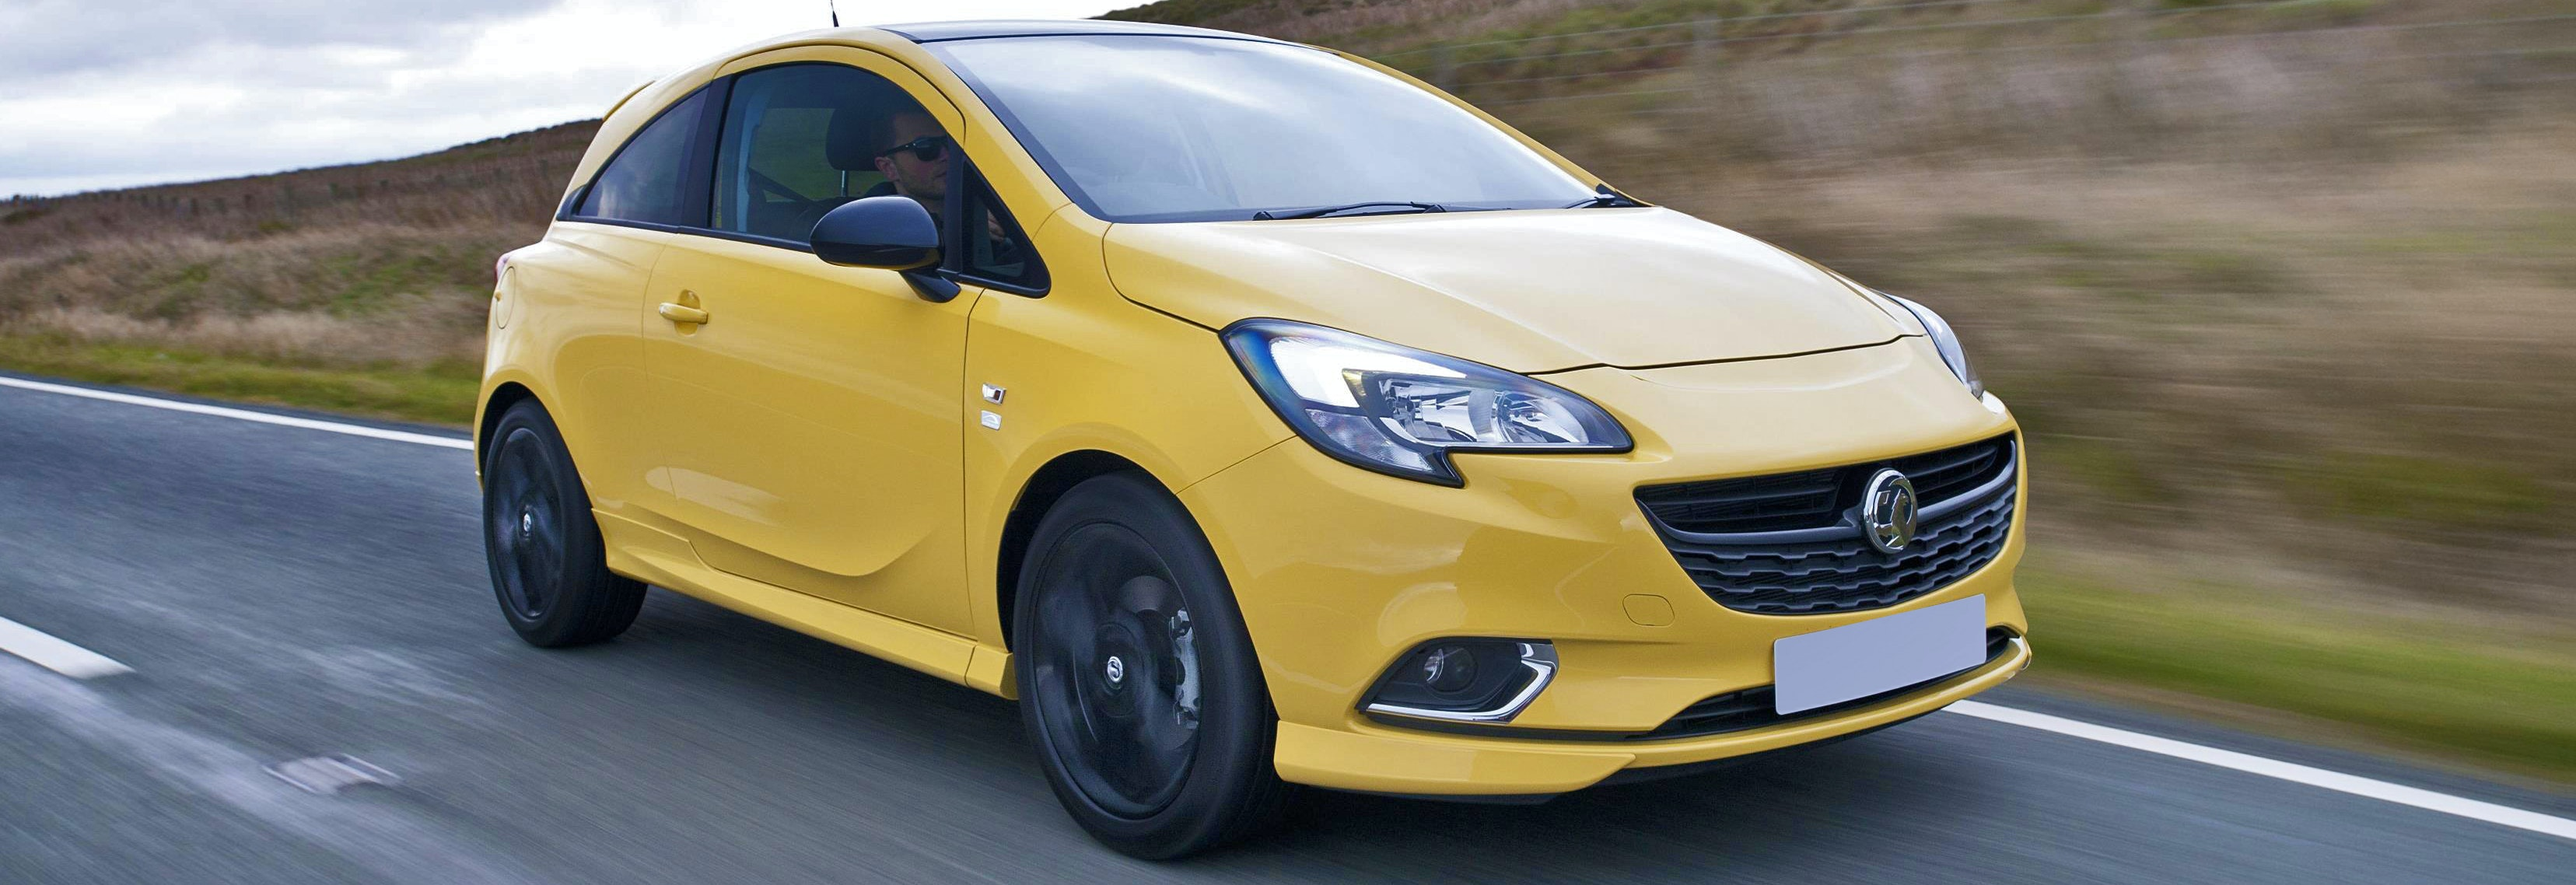 2018 vauxhall corsa yellow driving front